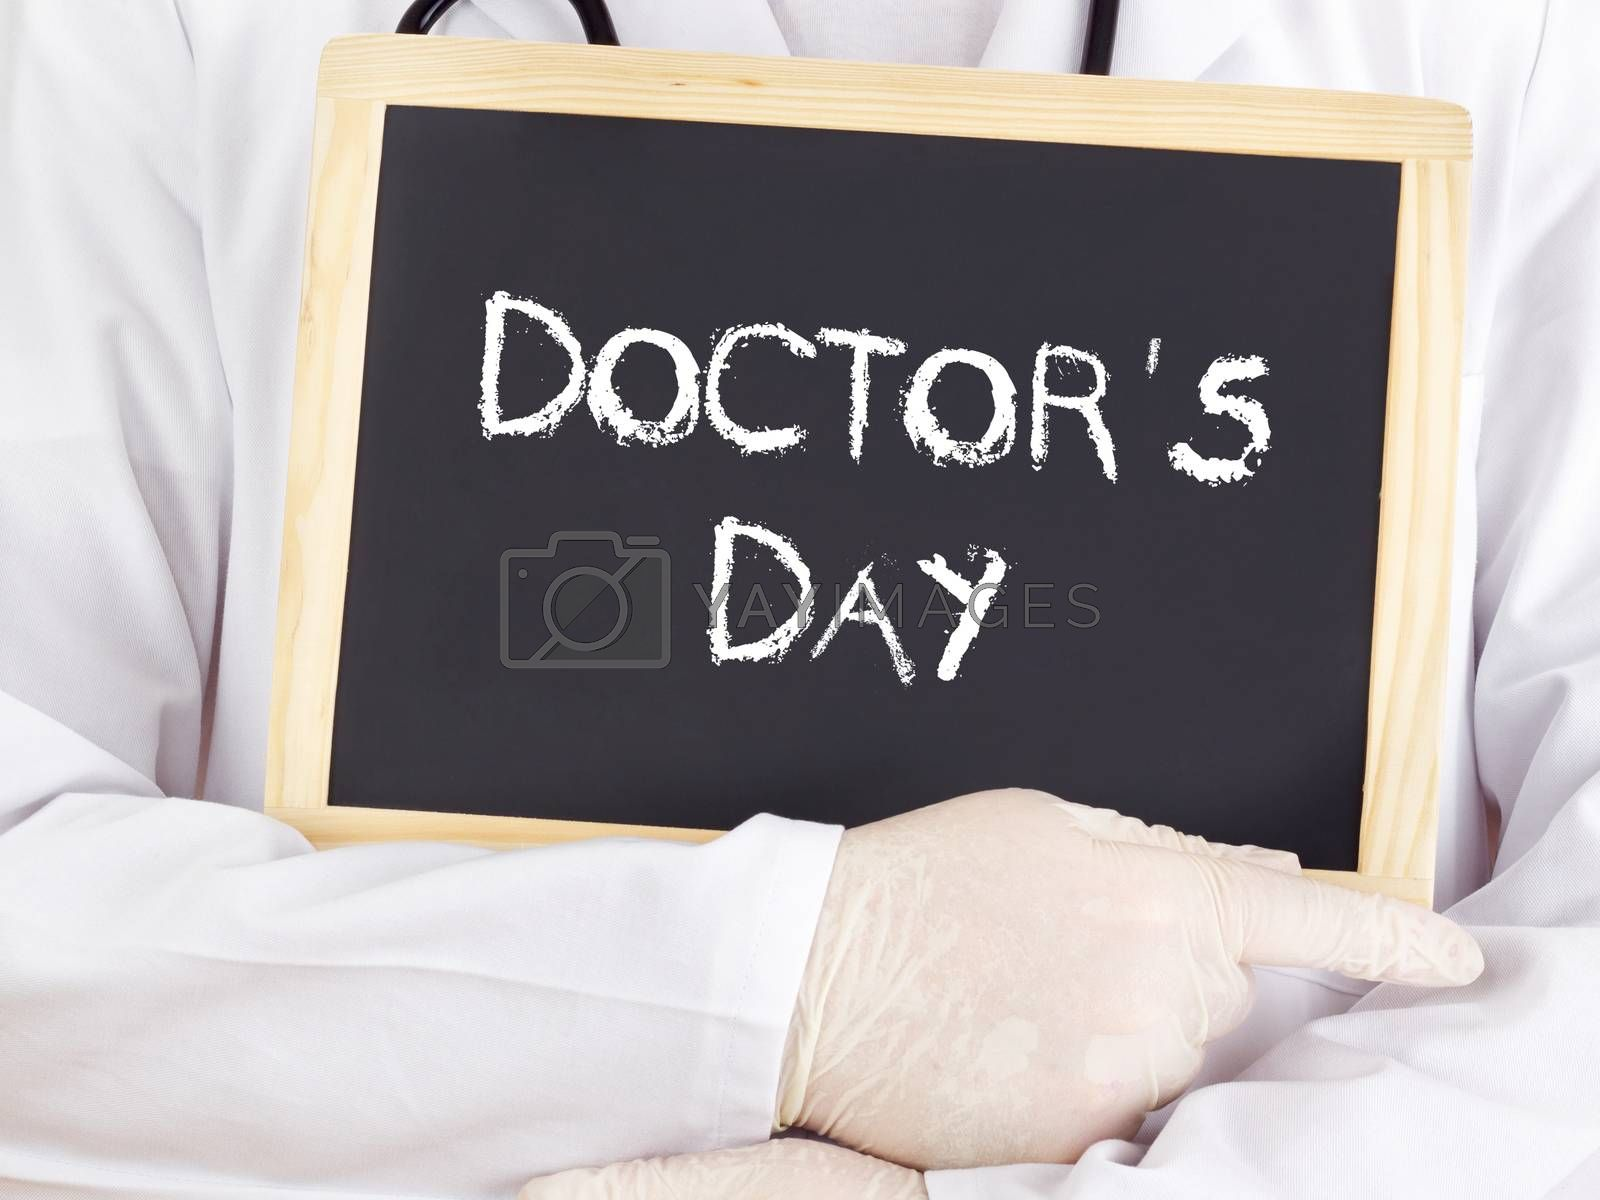 Doctor shows information: Doctors Day